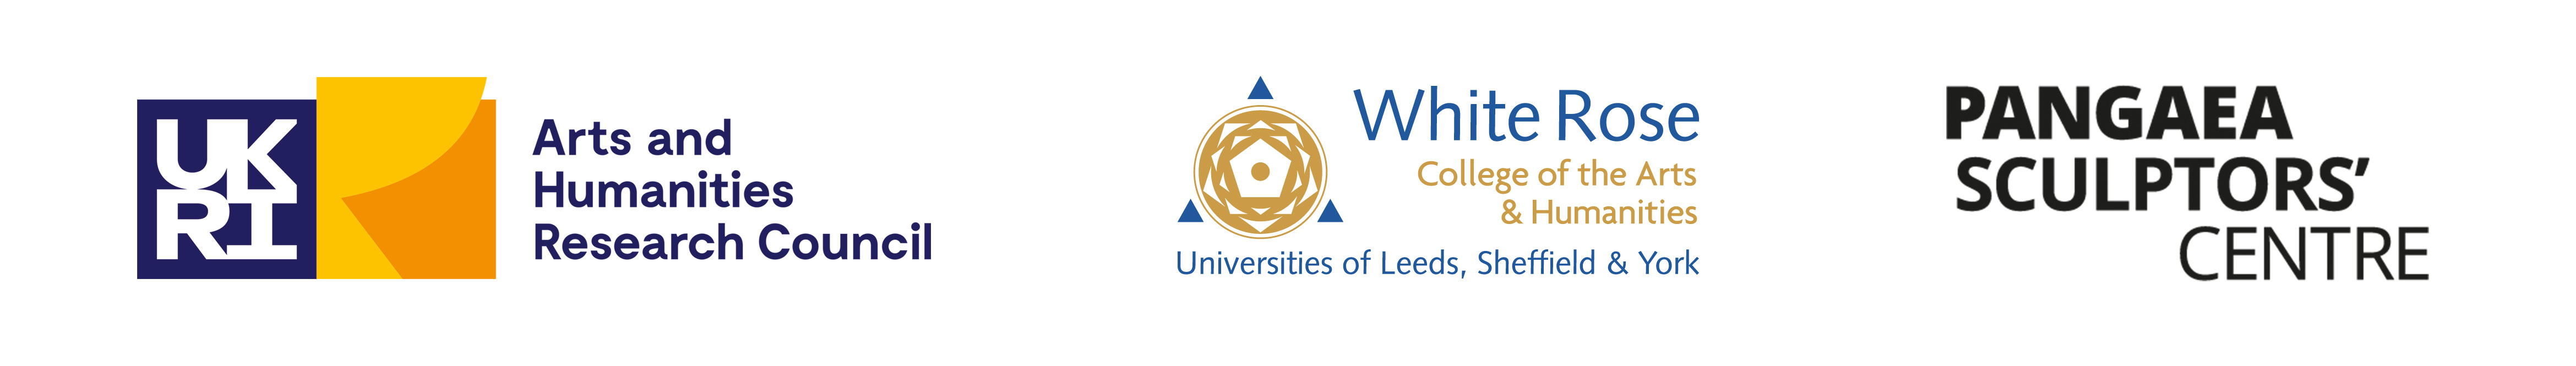 Logos for the Arts and Humanities Research Council; White Rose College of the Arts & Humanities, Universities of Leeds Sheffield & York; Pangaea Sculptors' Centre.